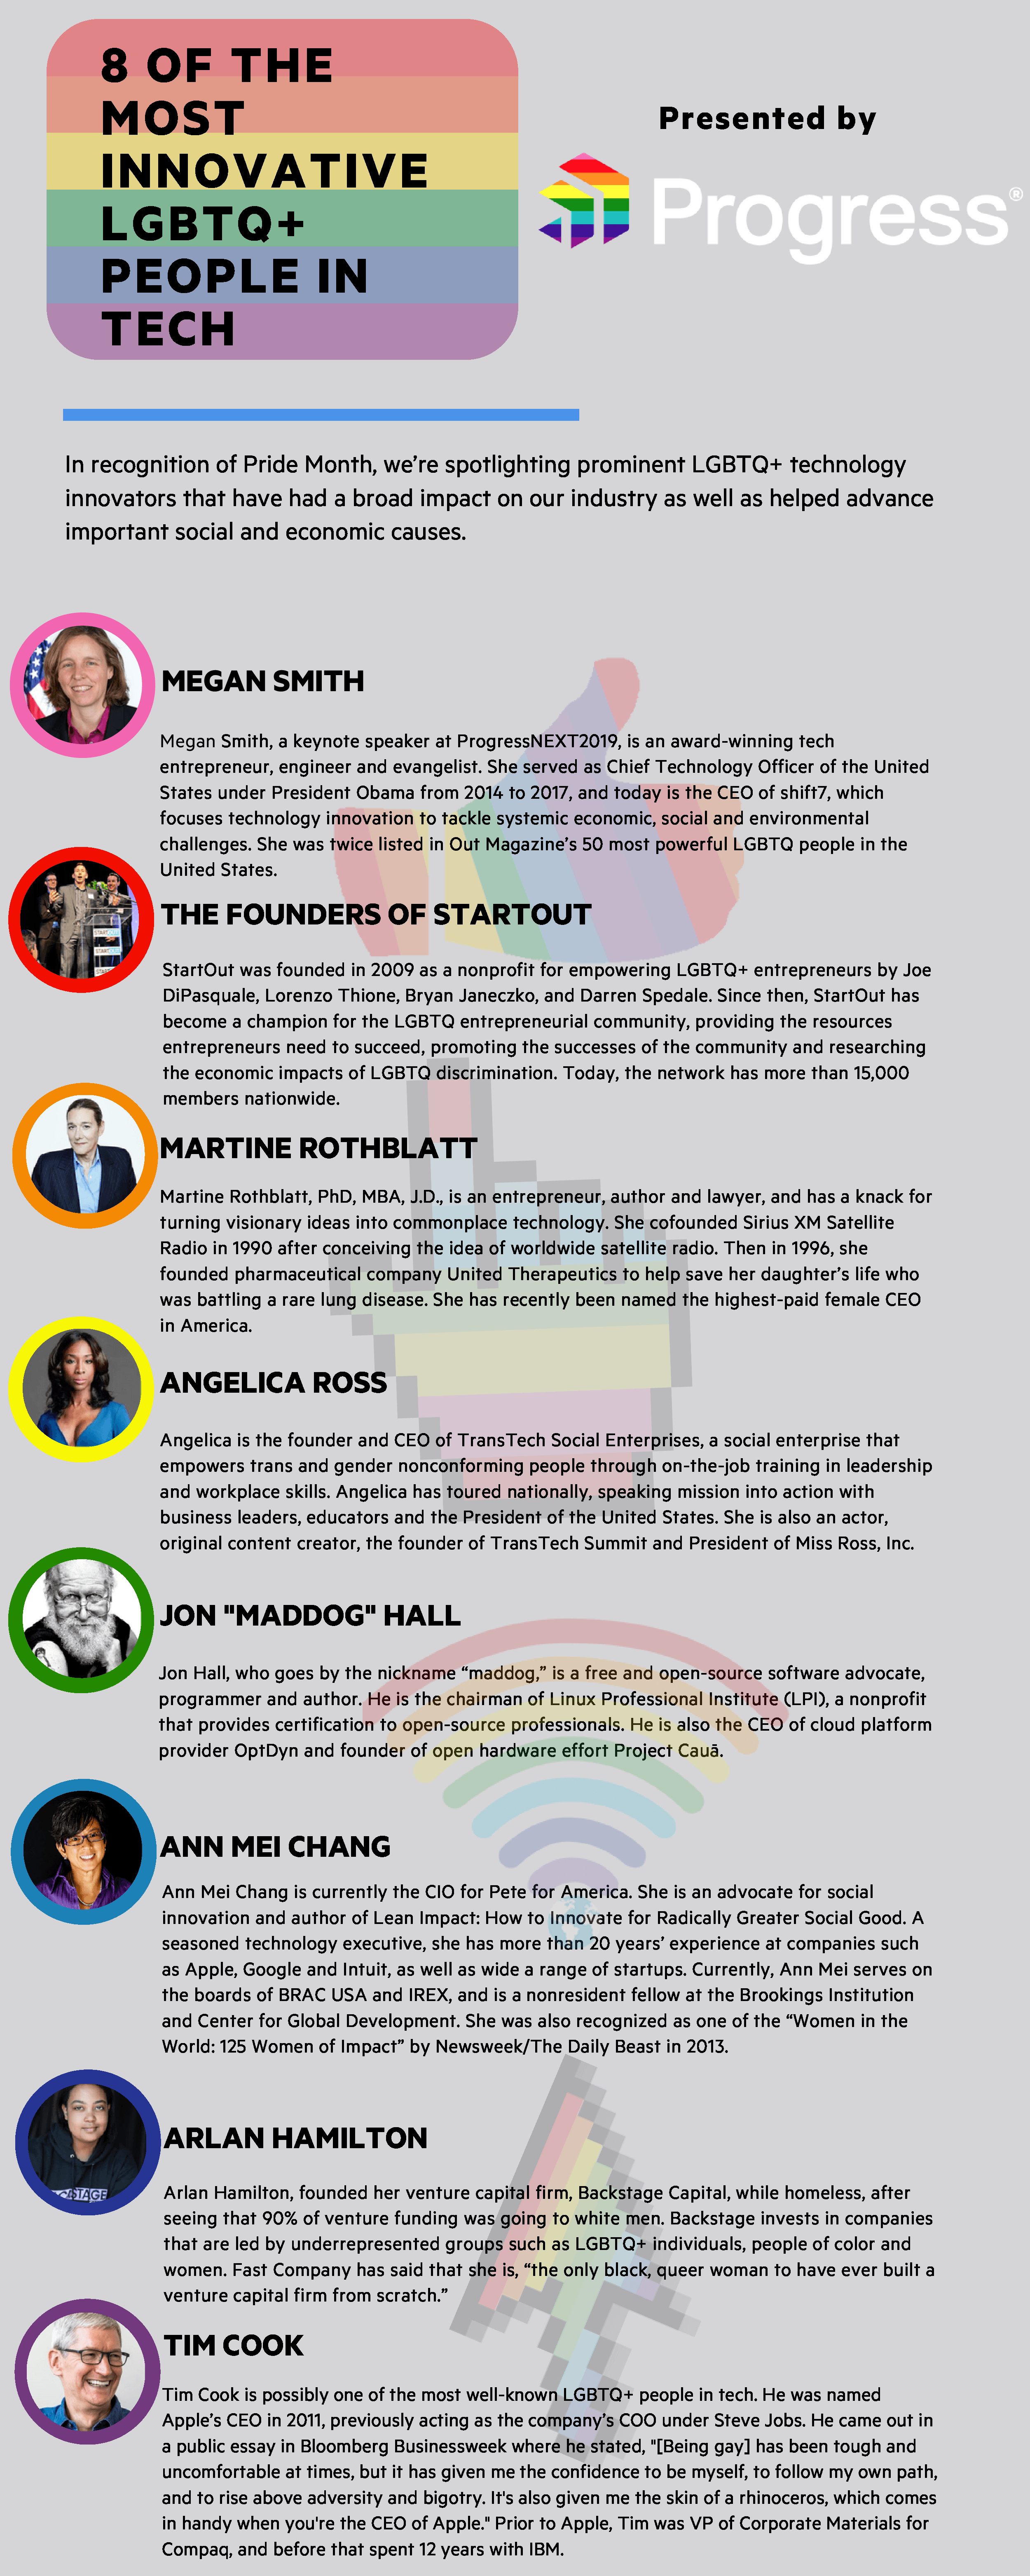 8 of the Most Innovative LGBTQ+ People in Tech Infographic